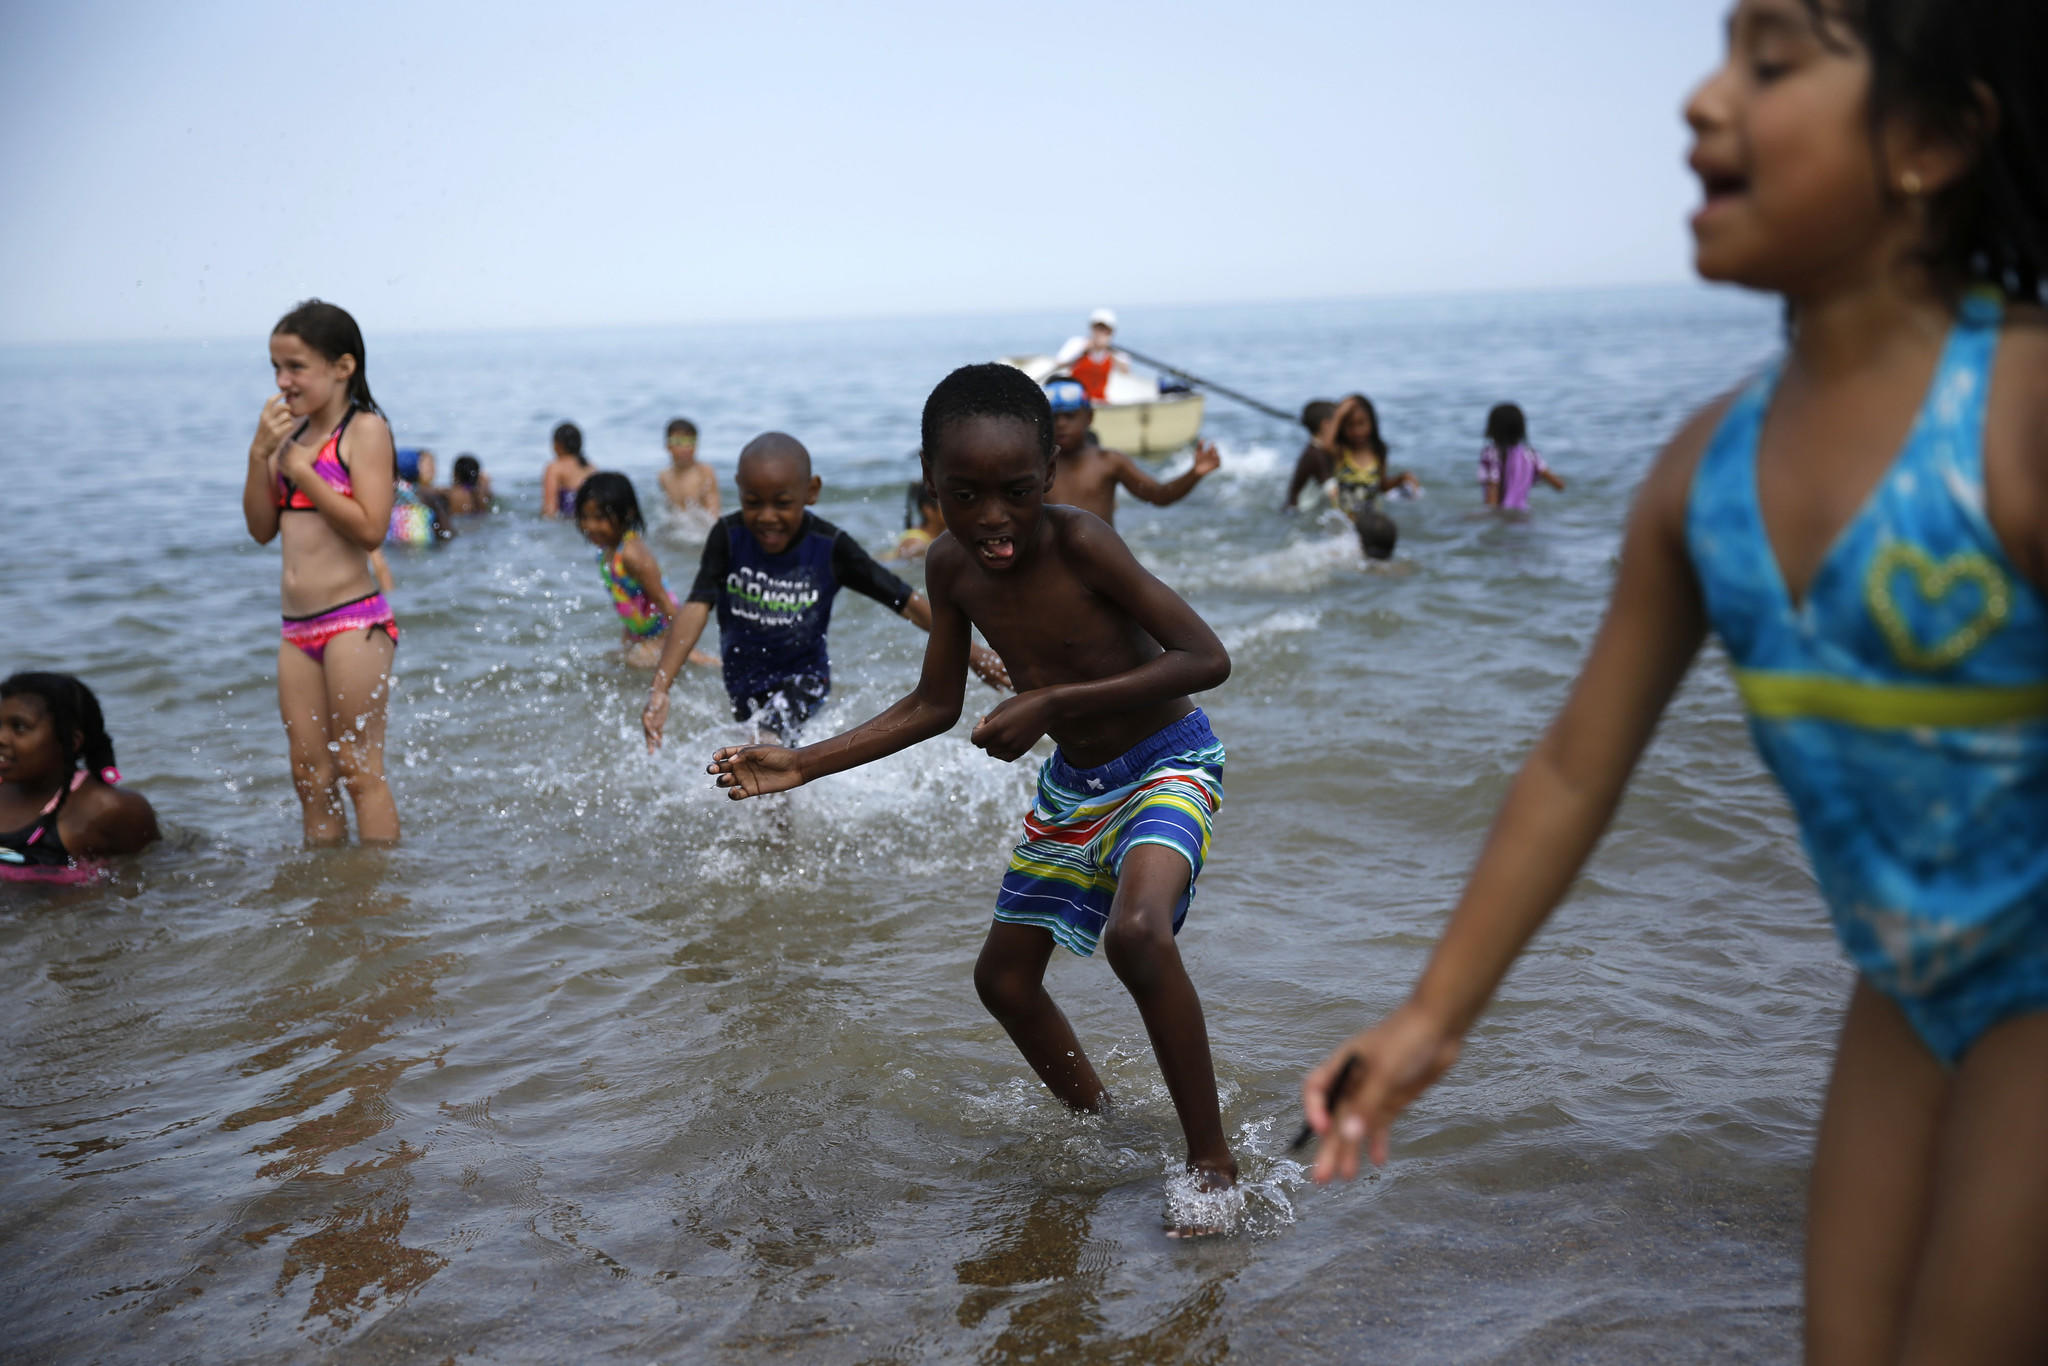 Children, ages ranging from 6-9 years old, from Loyola Park day camp play in the lake at Leone Beach in Chicago's Far North Side to keep cool on a hot summer day in July 2013.